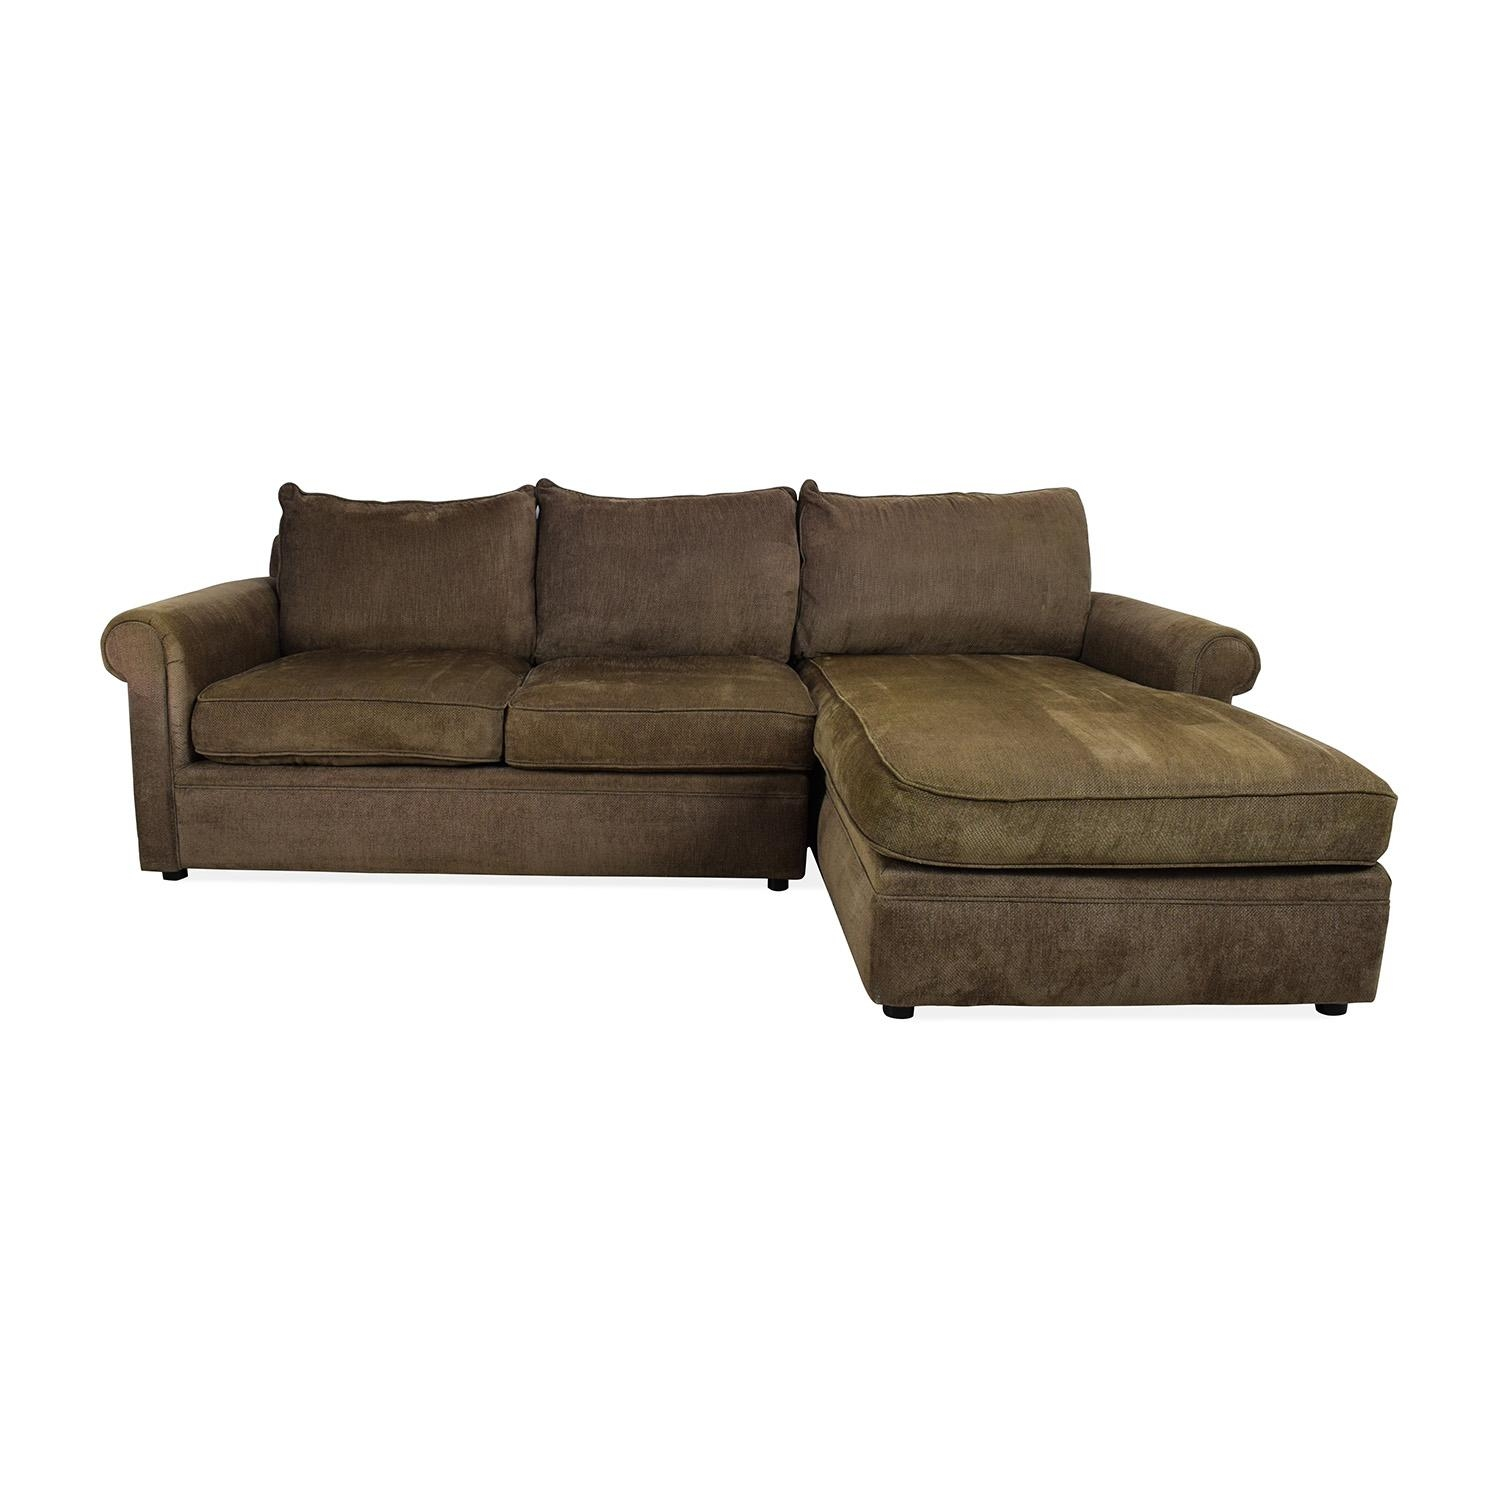 83% Off - Bloomingdales Bloomingdale's Sectional / Sofas within Bloomingdales Sofas